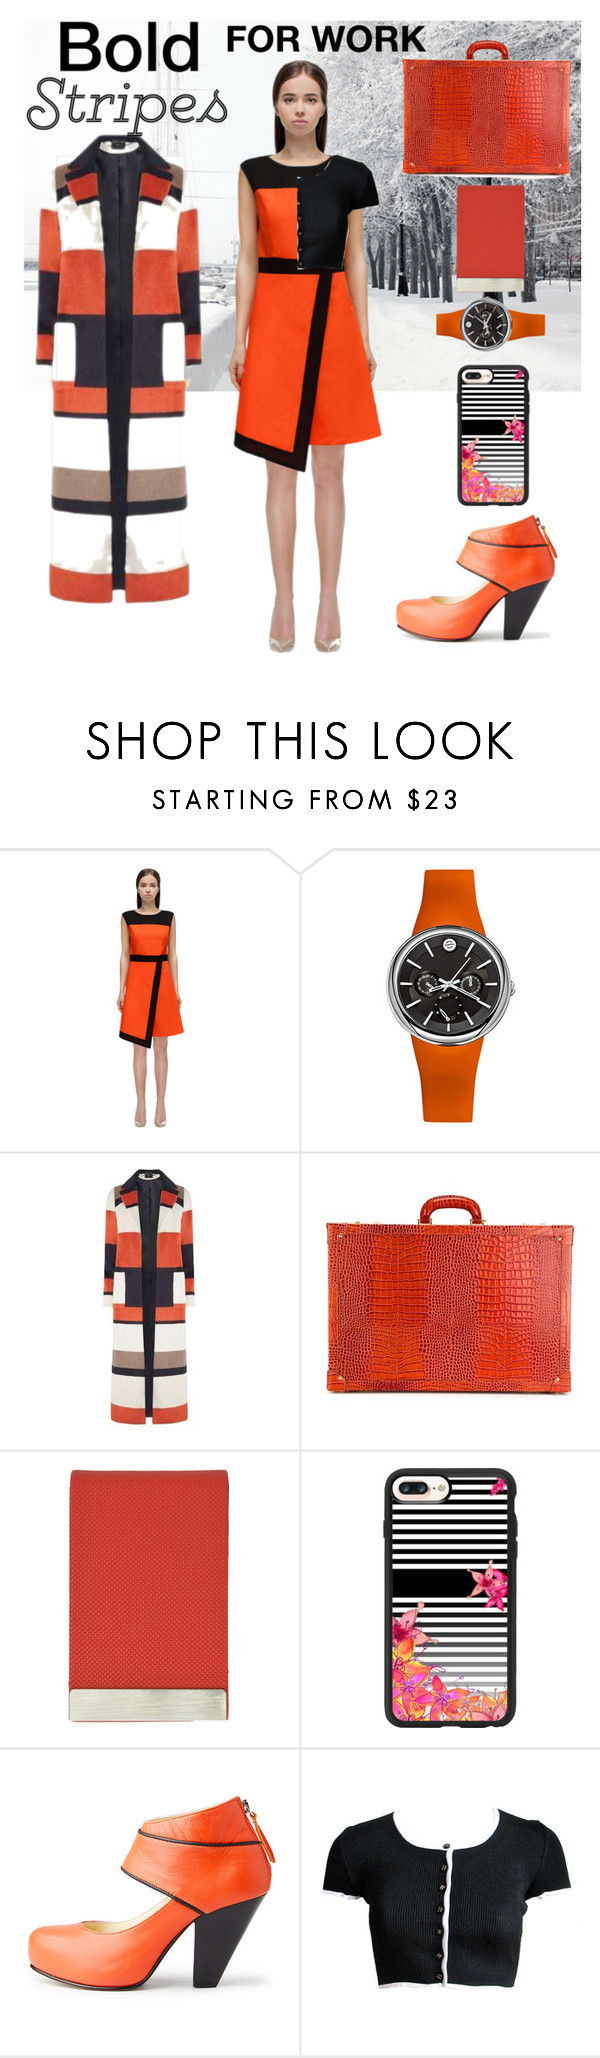 """""""BUSINESS STRIPES"""" by carolsha ❤ liked on Polyvore featuring Philip Stein, Dorothy Perkins, Family Affair, Casetify and Nine to Five"""